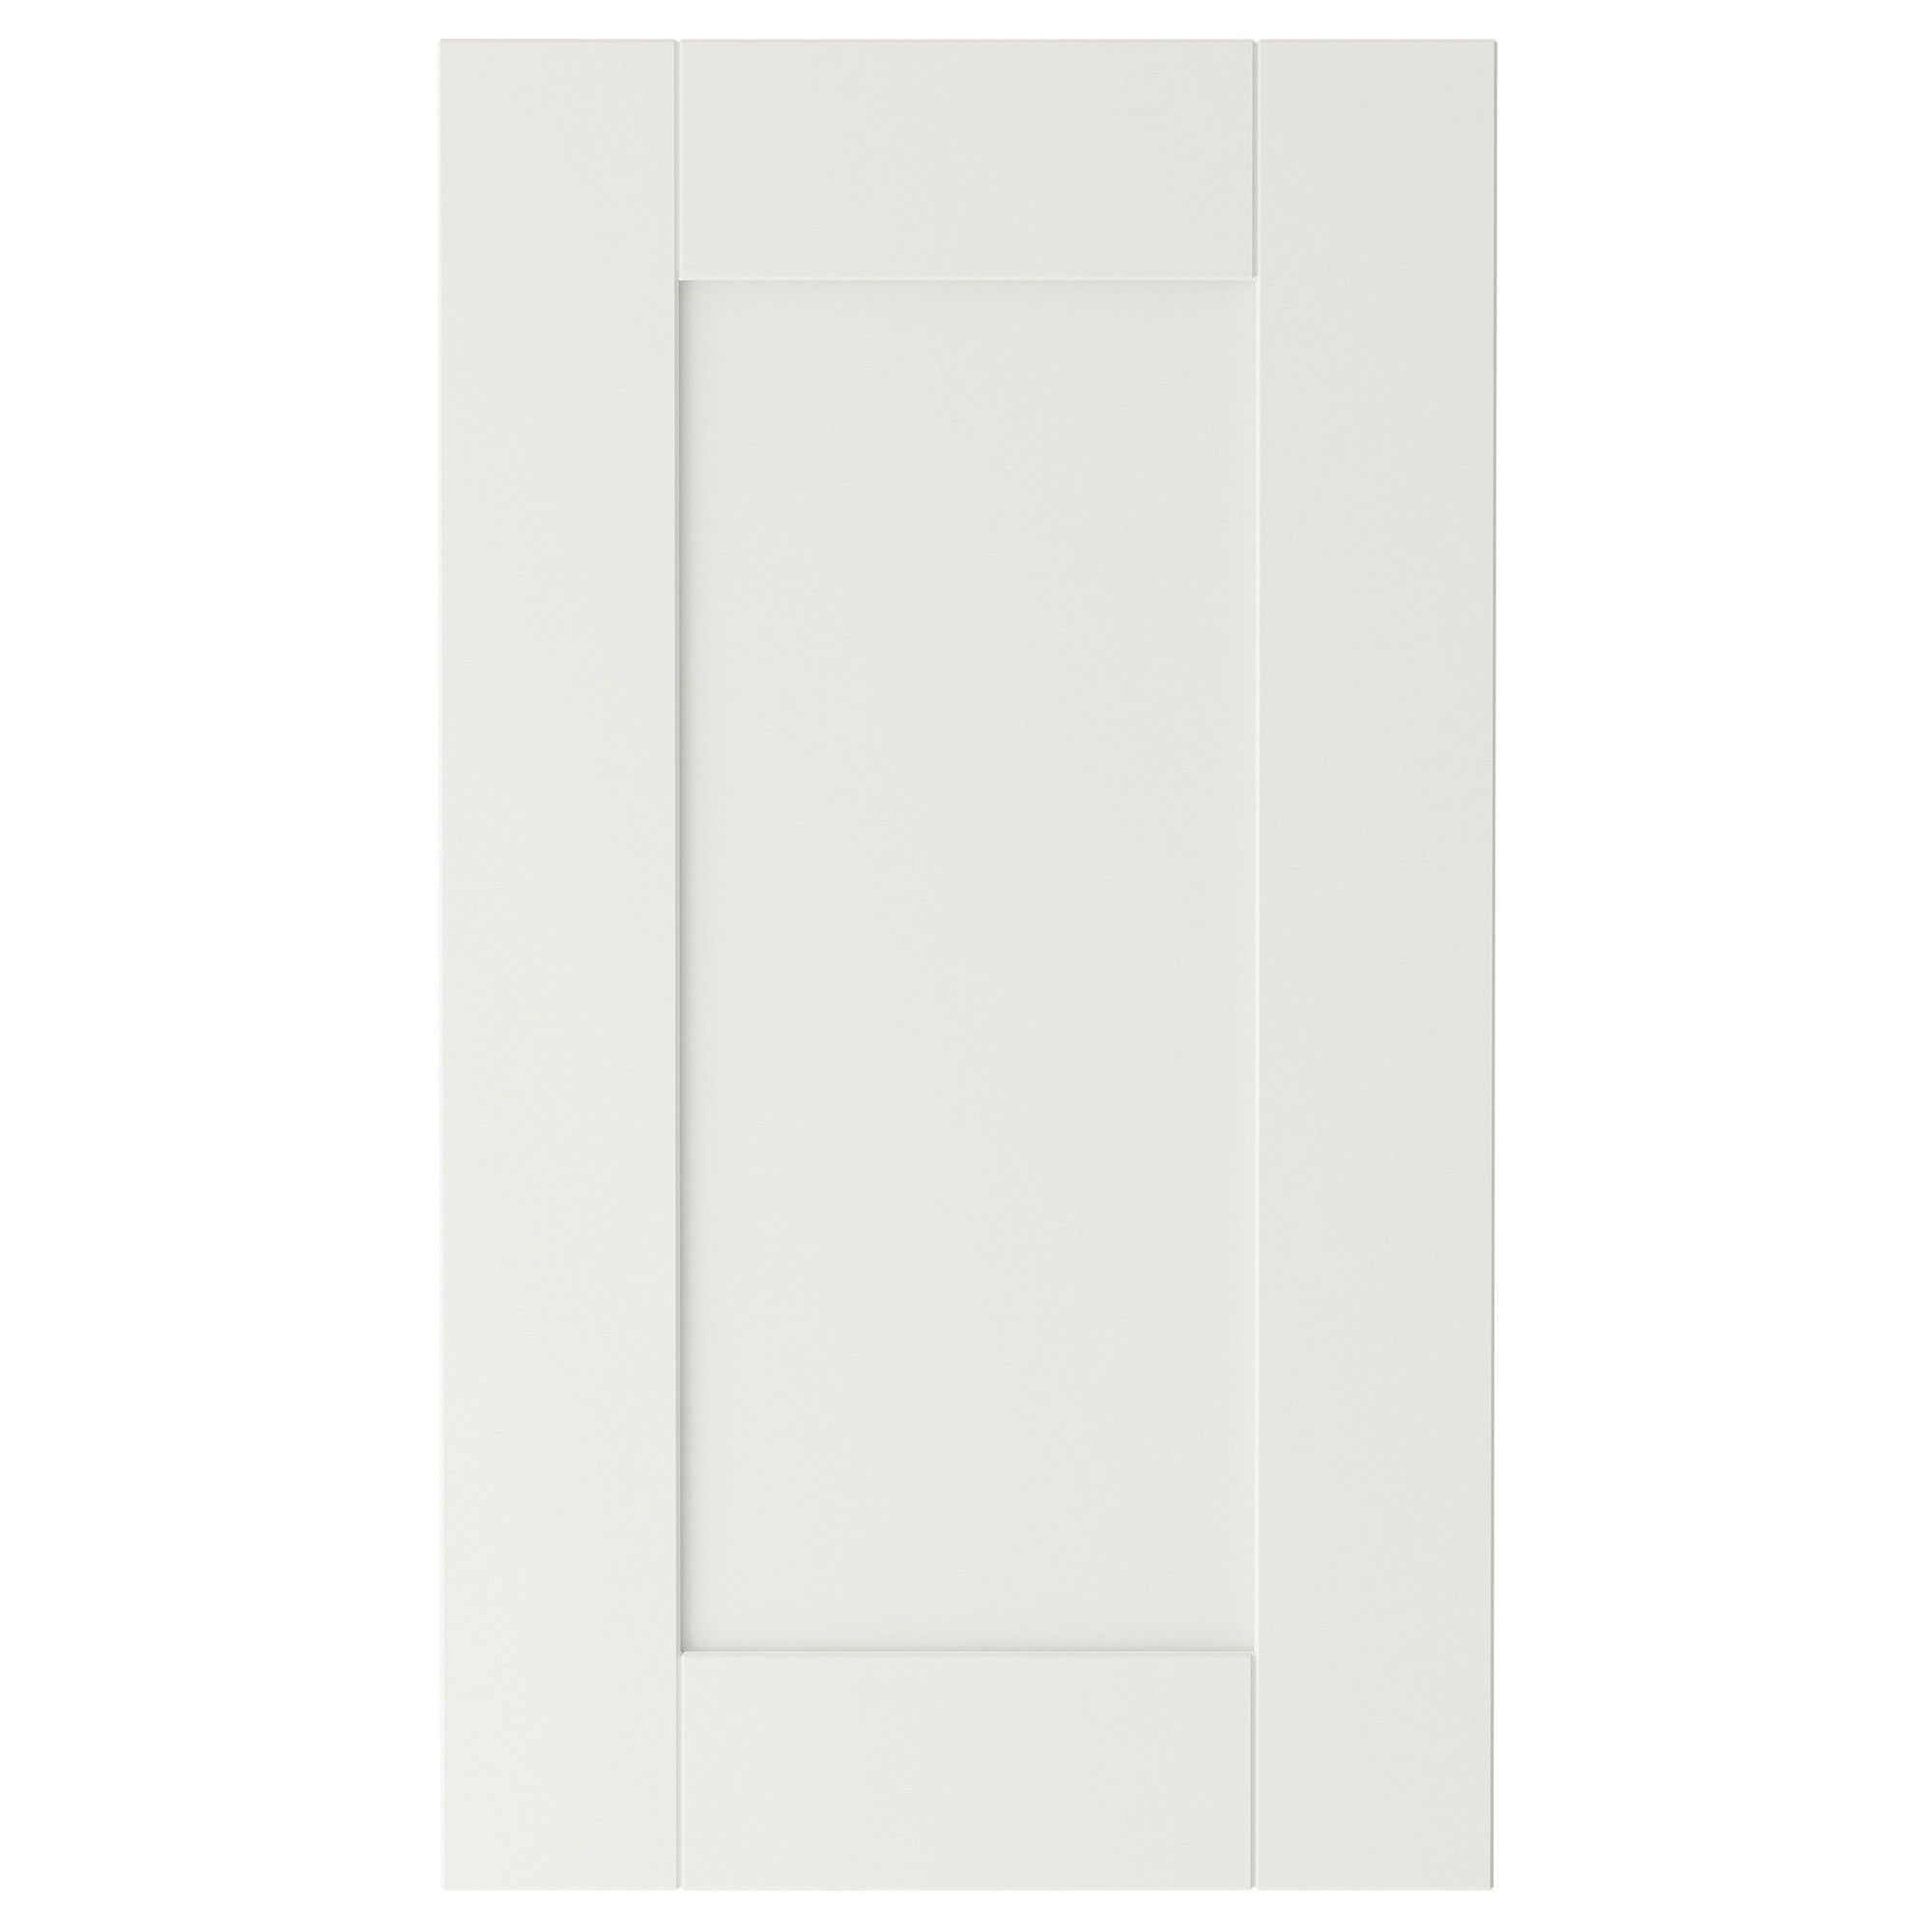 Ikea Off White Kitchen Cabinets Cabinet Door From Ikea Ädel 2 P Door Corner Base Cabinet